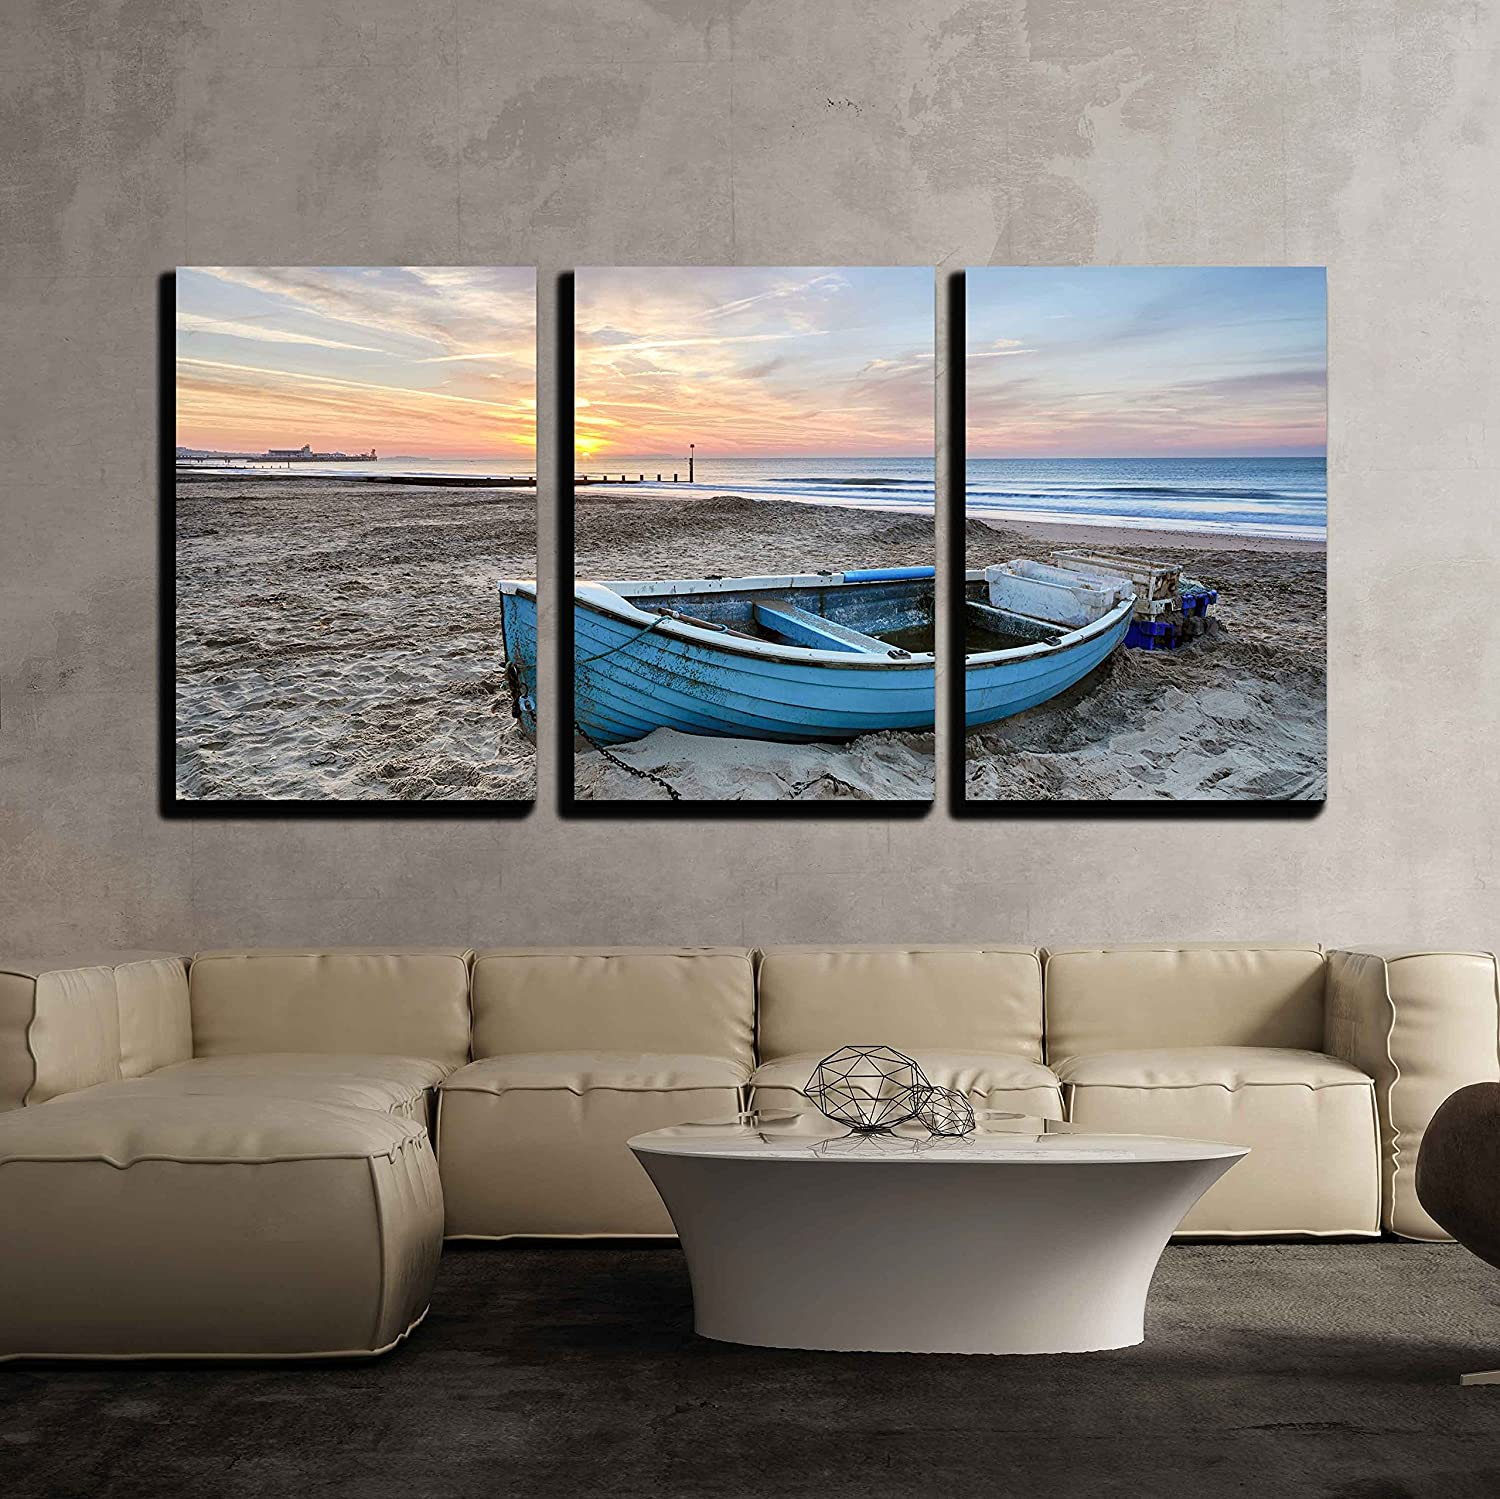 wall26 Max 56% OFF - Luxury goods 3 Piece Canvas Wall Blue Boat Art Fishing a Turquoise